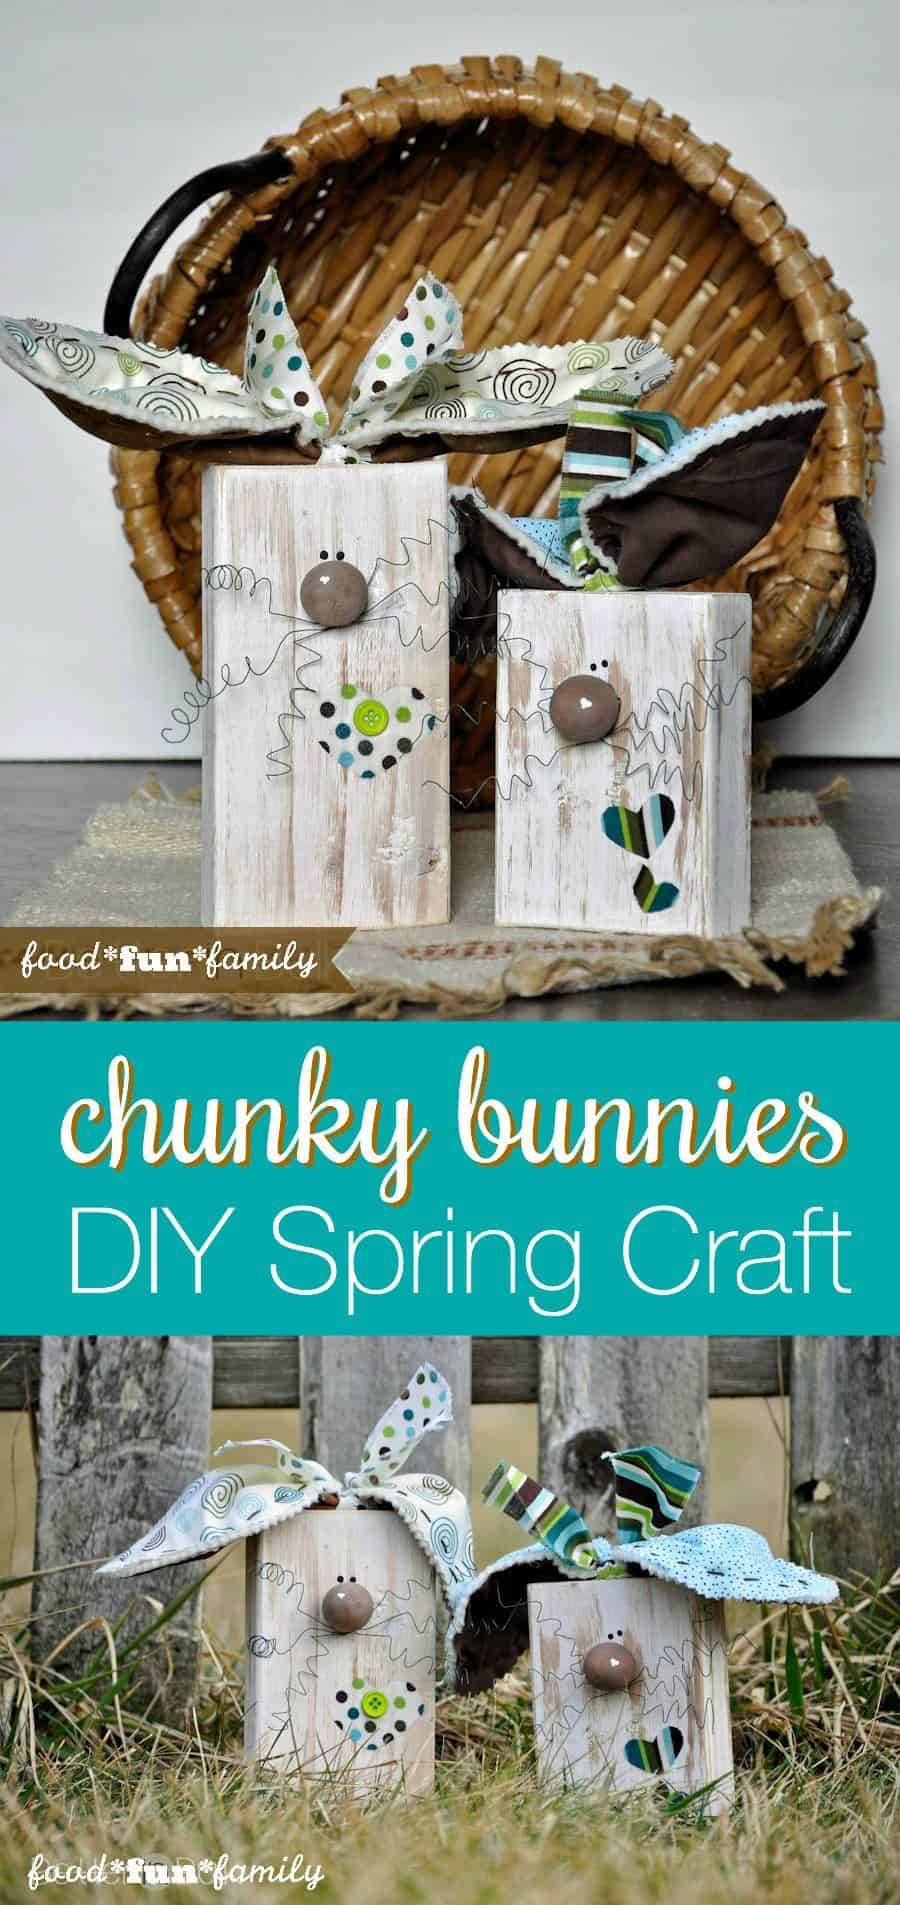 27 Fun Diy Easter Decorations To Dress Up Your Home For The